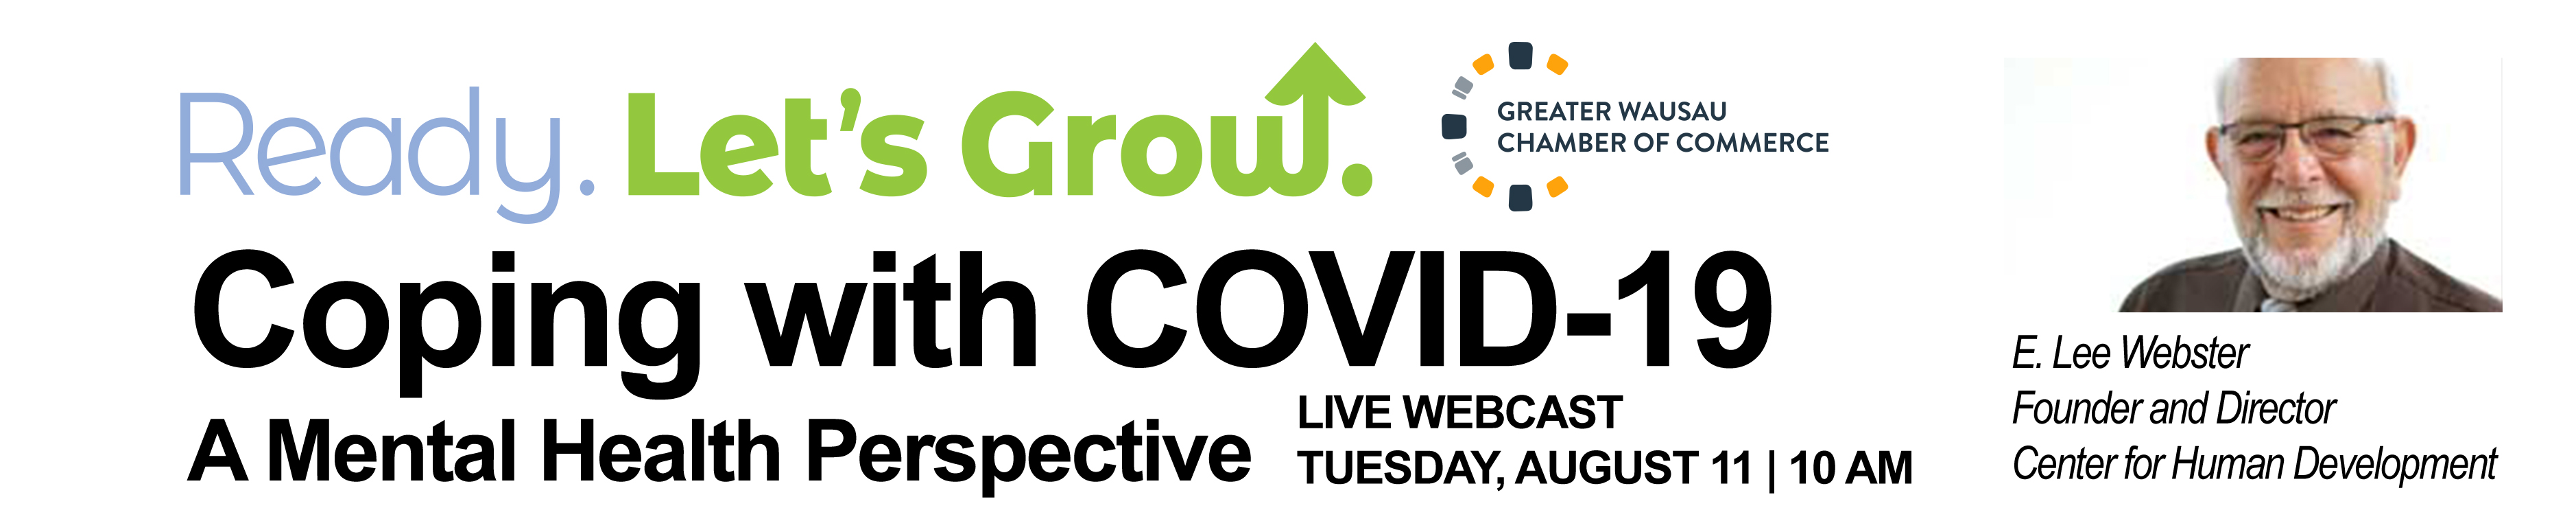 Ready. Let's Grow GREATER WAUSAU CHAMBER OF COMMERCE Coping with COVID-19 E. Lee Webster LIVE WEBCAST A Mental Health Perspective TUESDAY, AUGUST 11 | 10 AM Founder and Director Center for Human Development